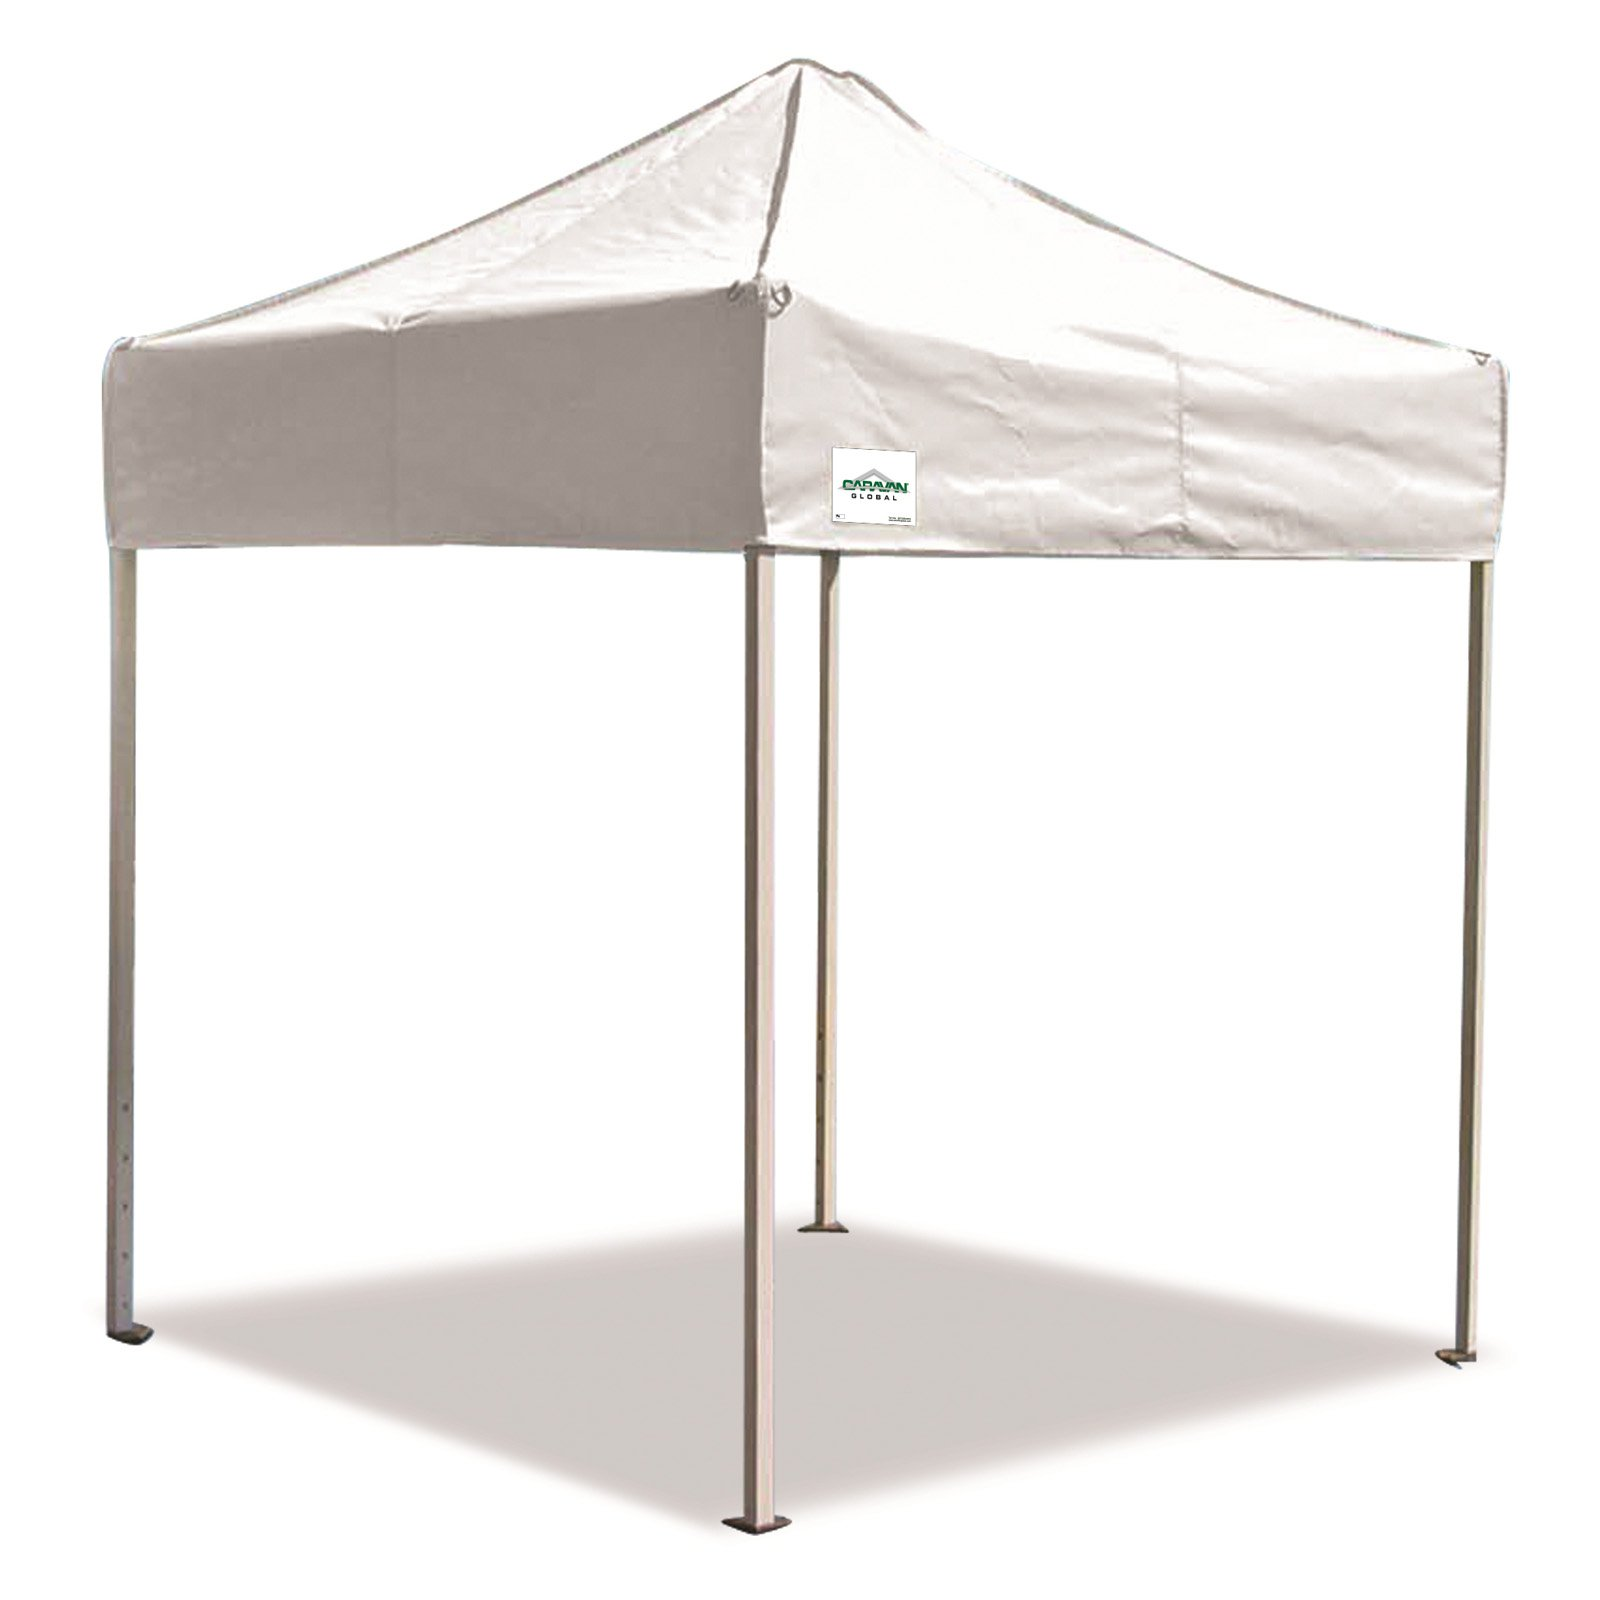 Caravan Sports 5 x 5 ft. Display Shade Commercial Canopy